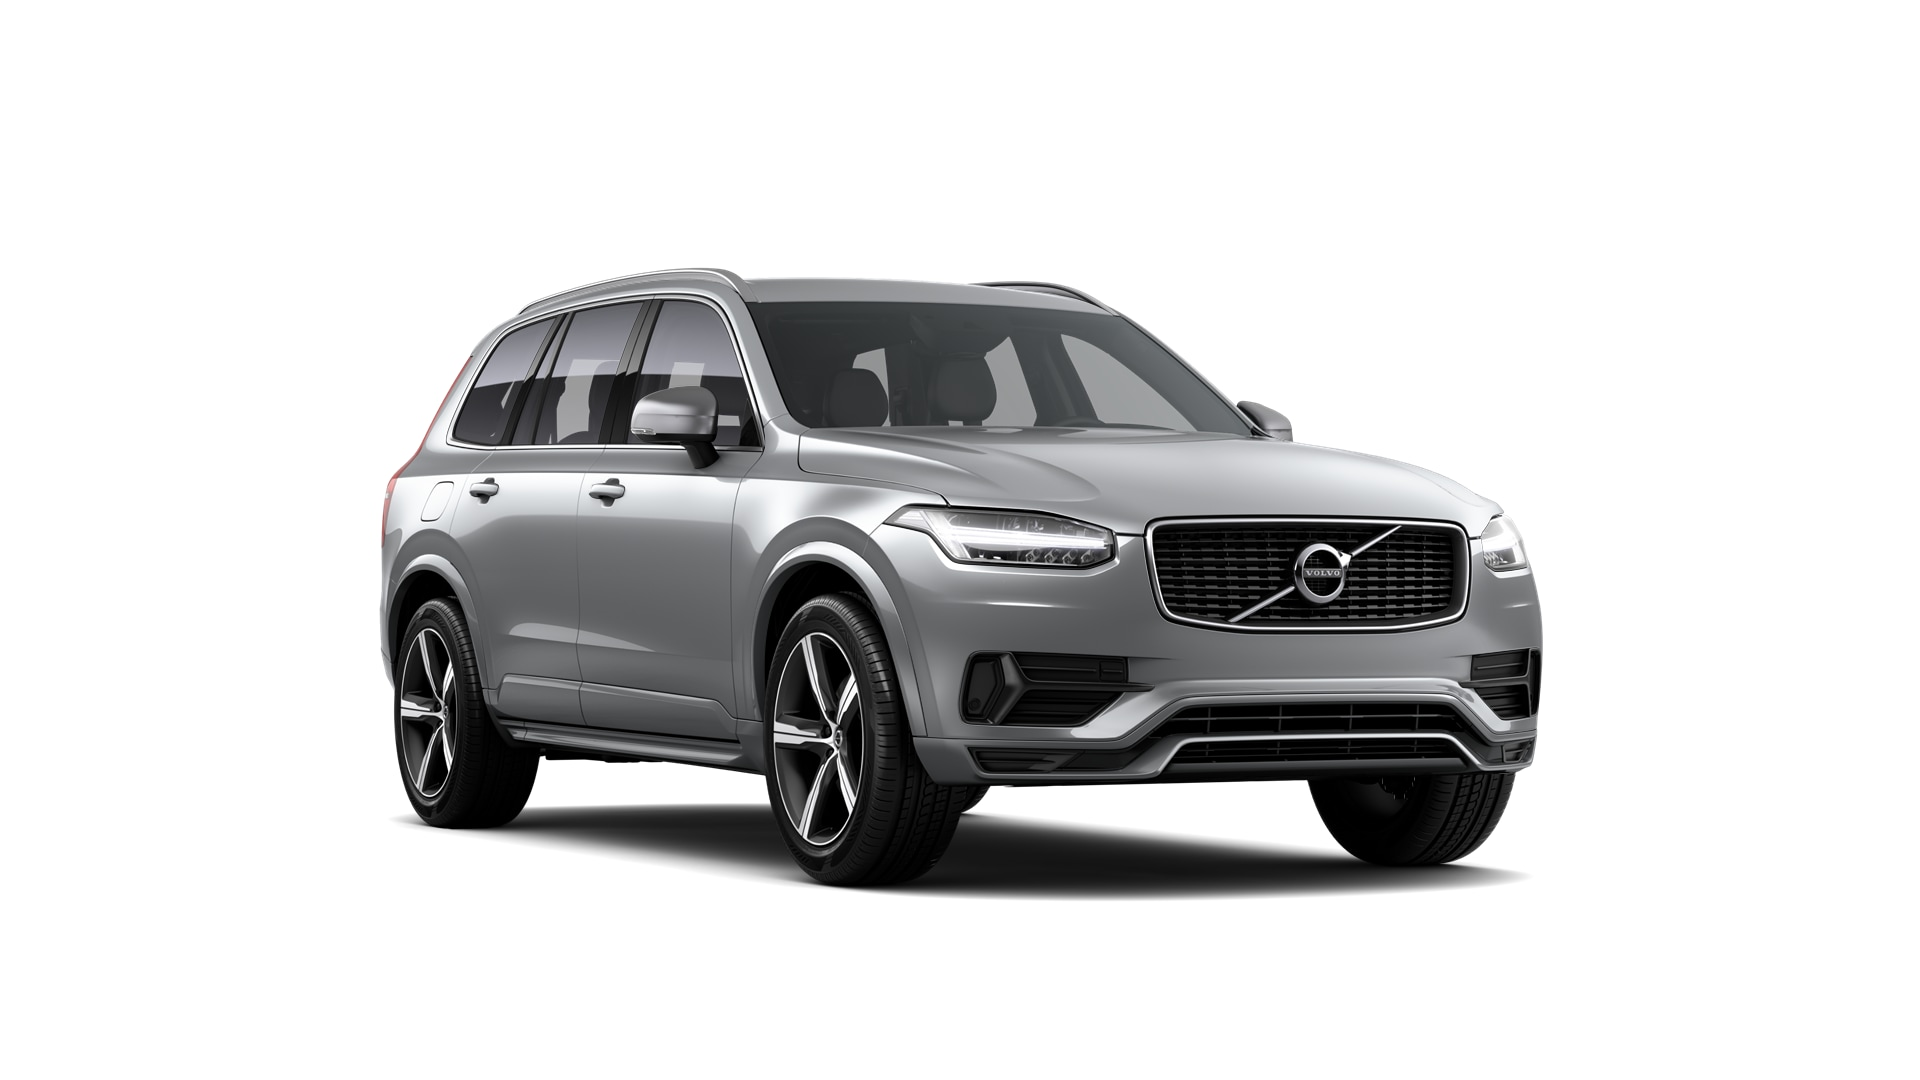 Volvo Xc90 Luxury Family Suv Volvo Cars Uk Ltd